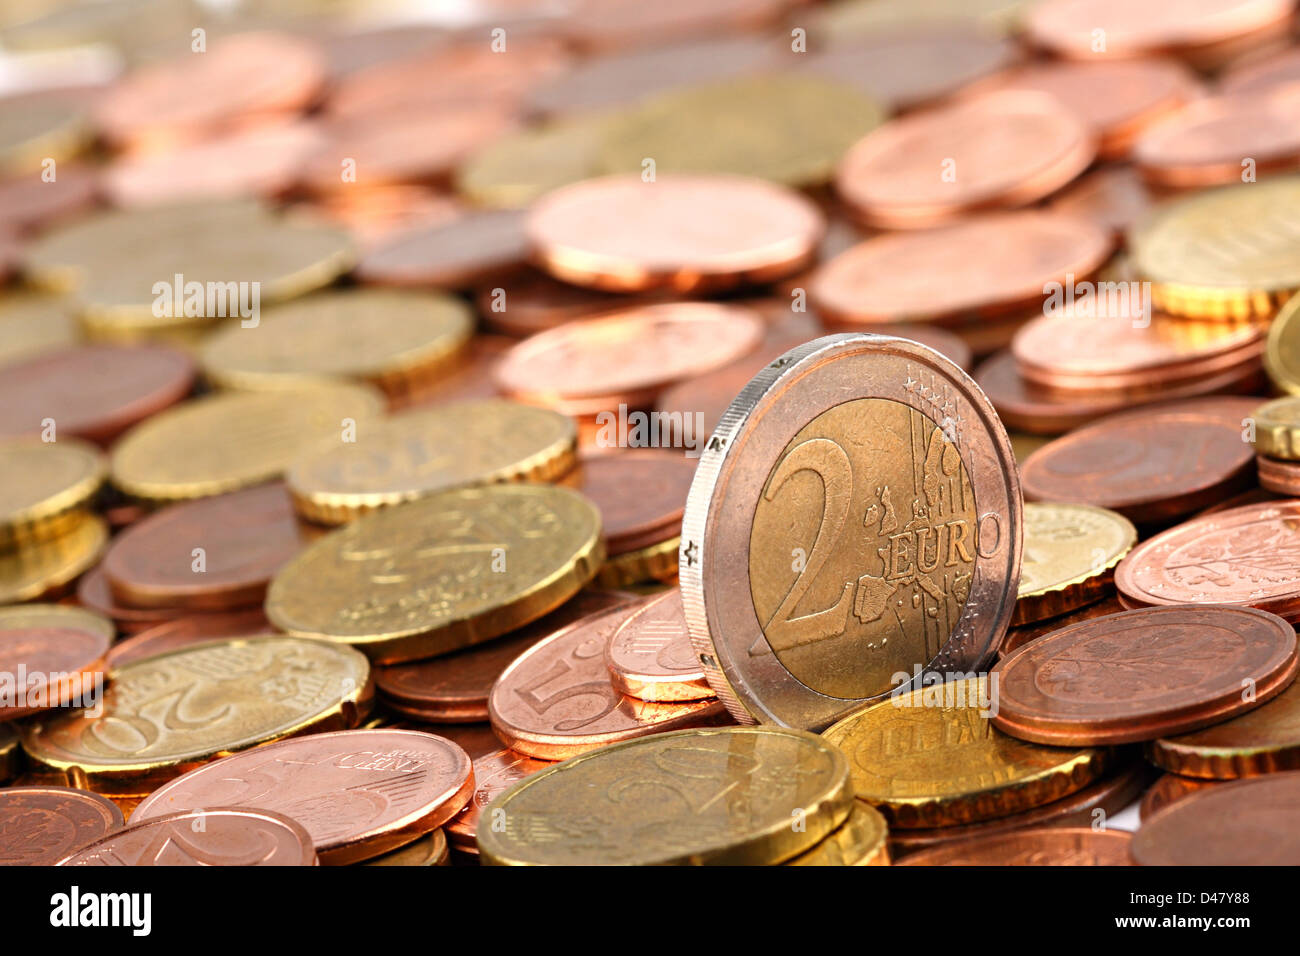 two EURO coin ina lot of EURO cent coins - Stock Image